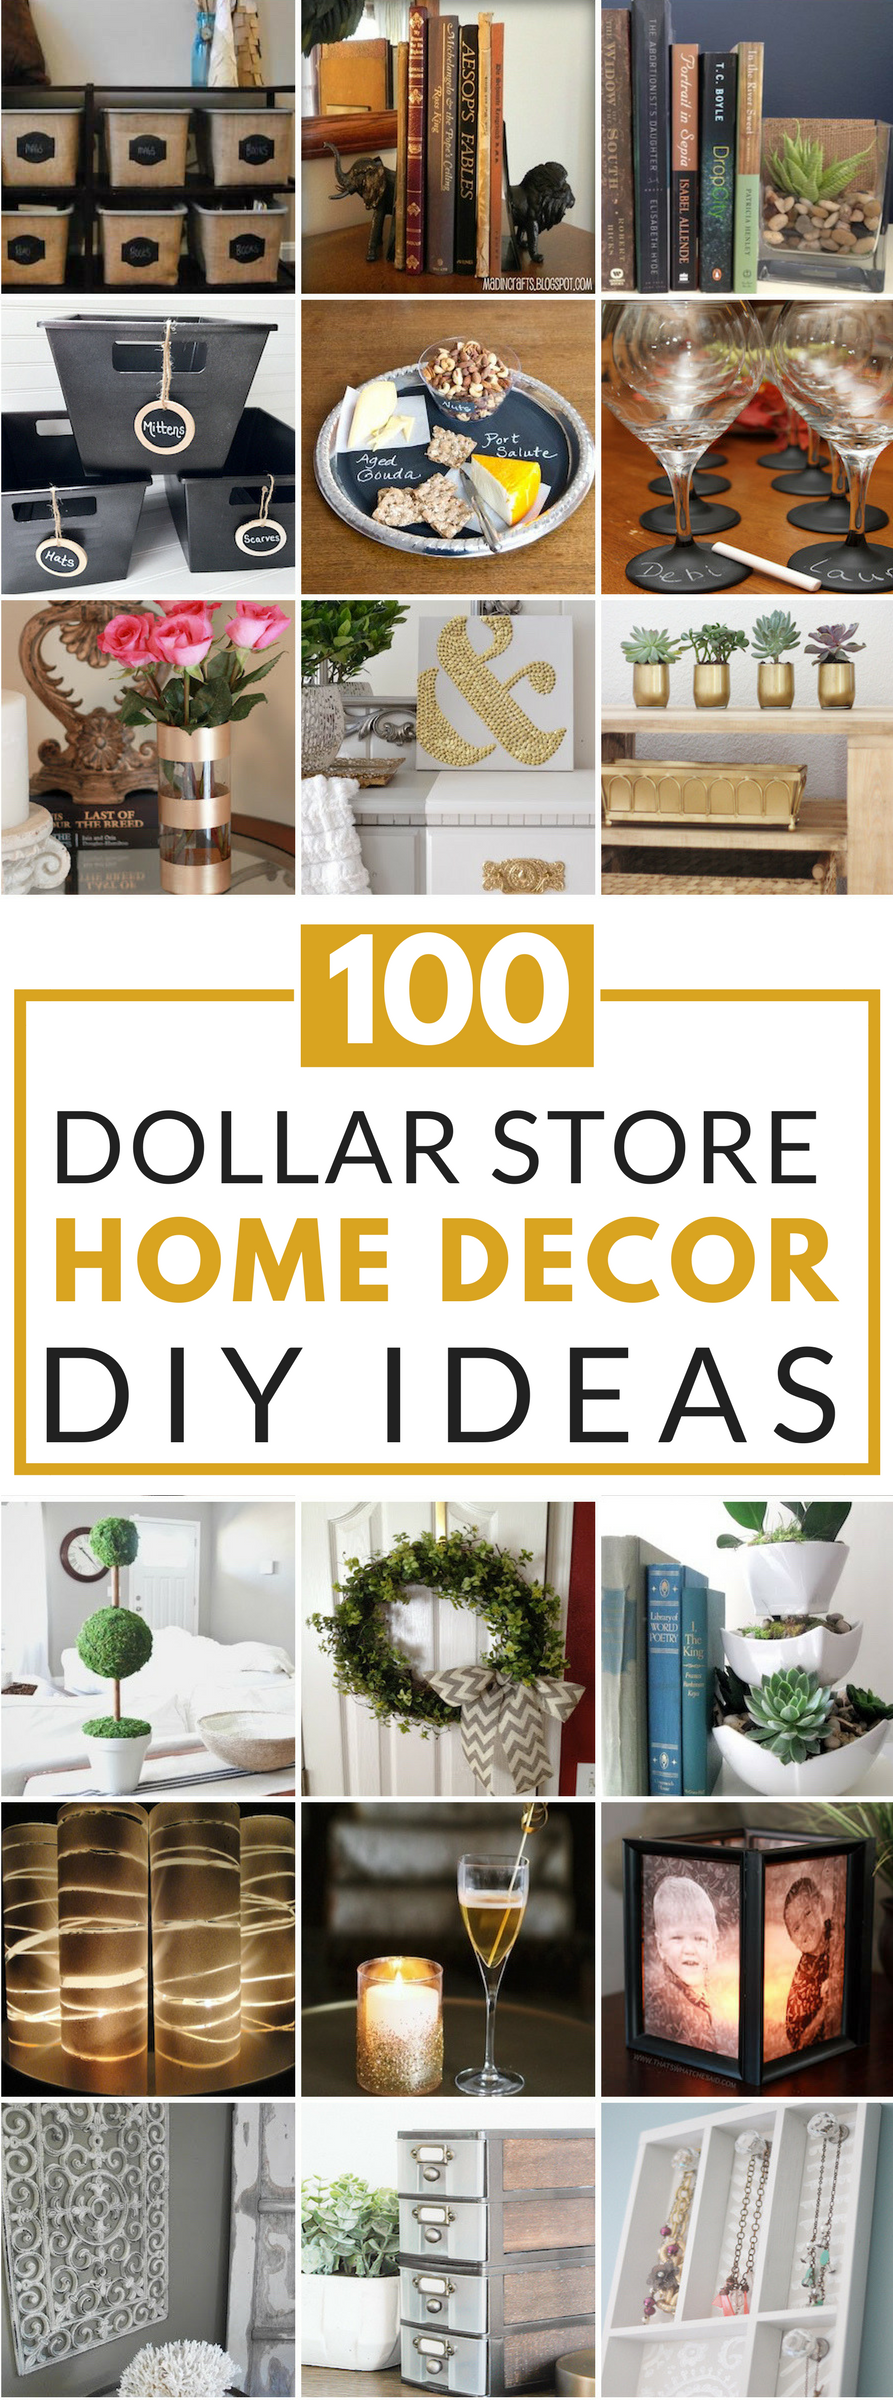 100 dollar store diy home decor ideas prudent penny pincher for Best diy home decor projects